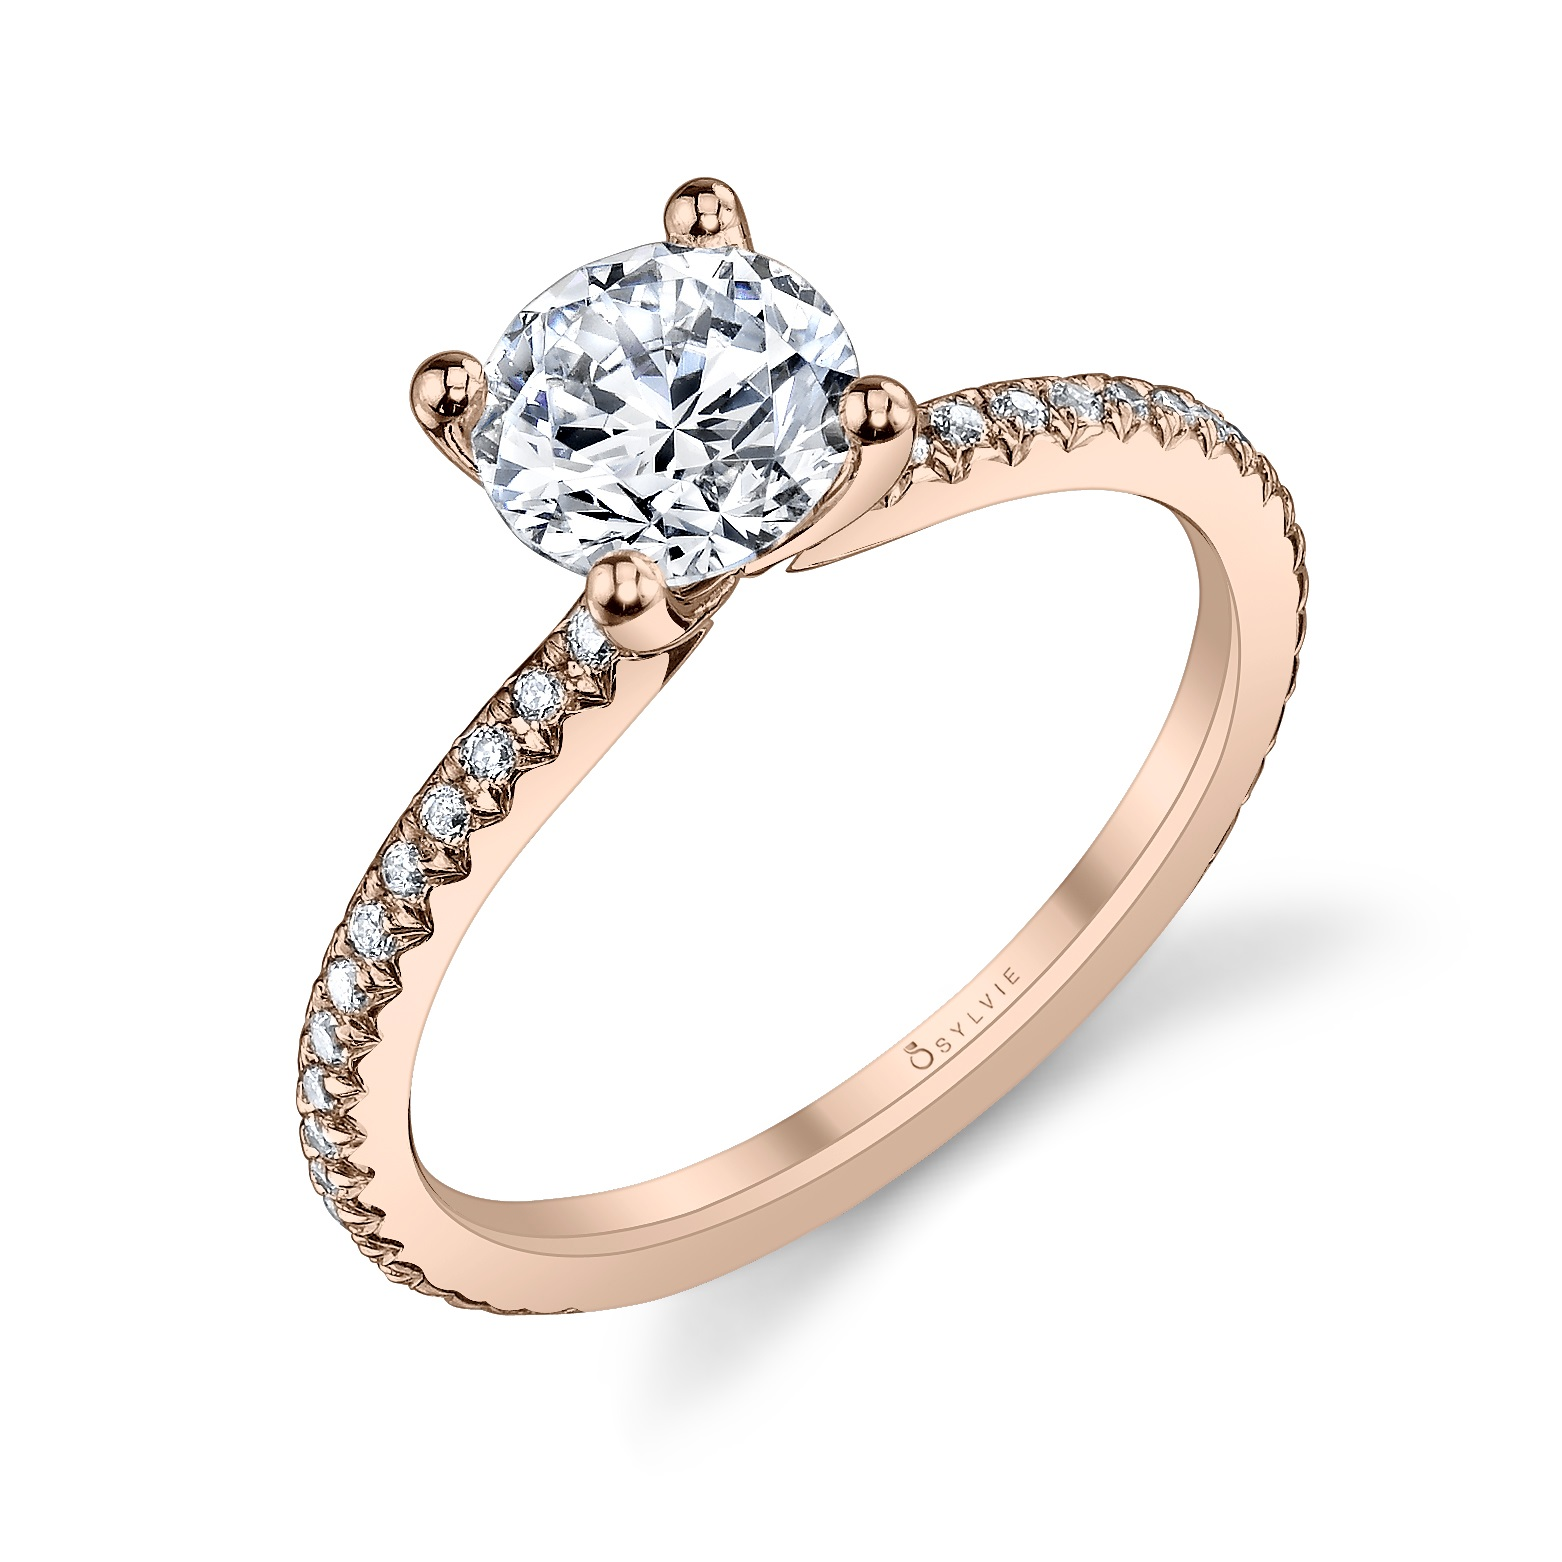 Solitaire Engagement Ring_S1093-021A4W10R